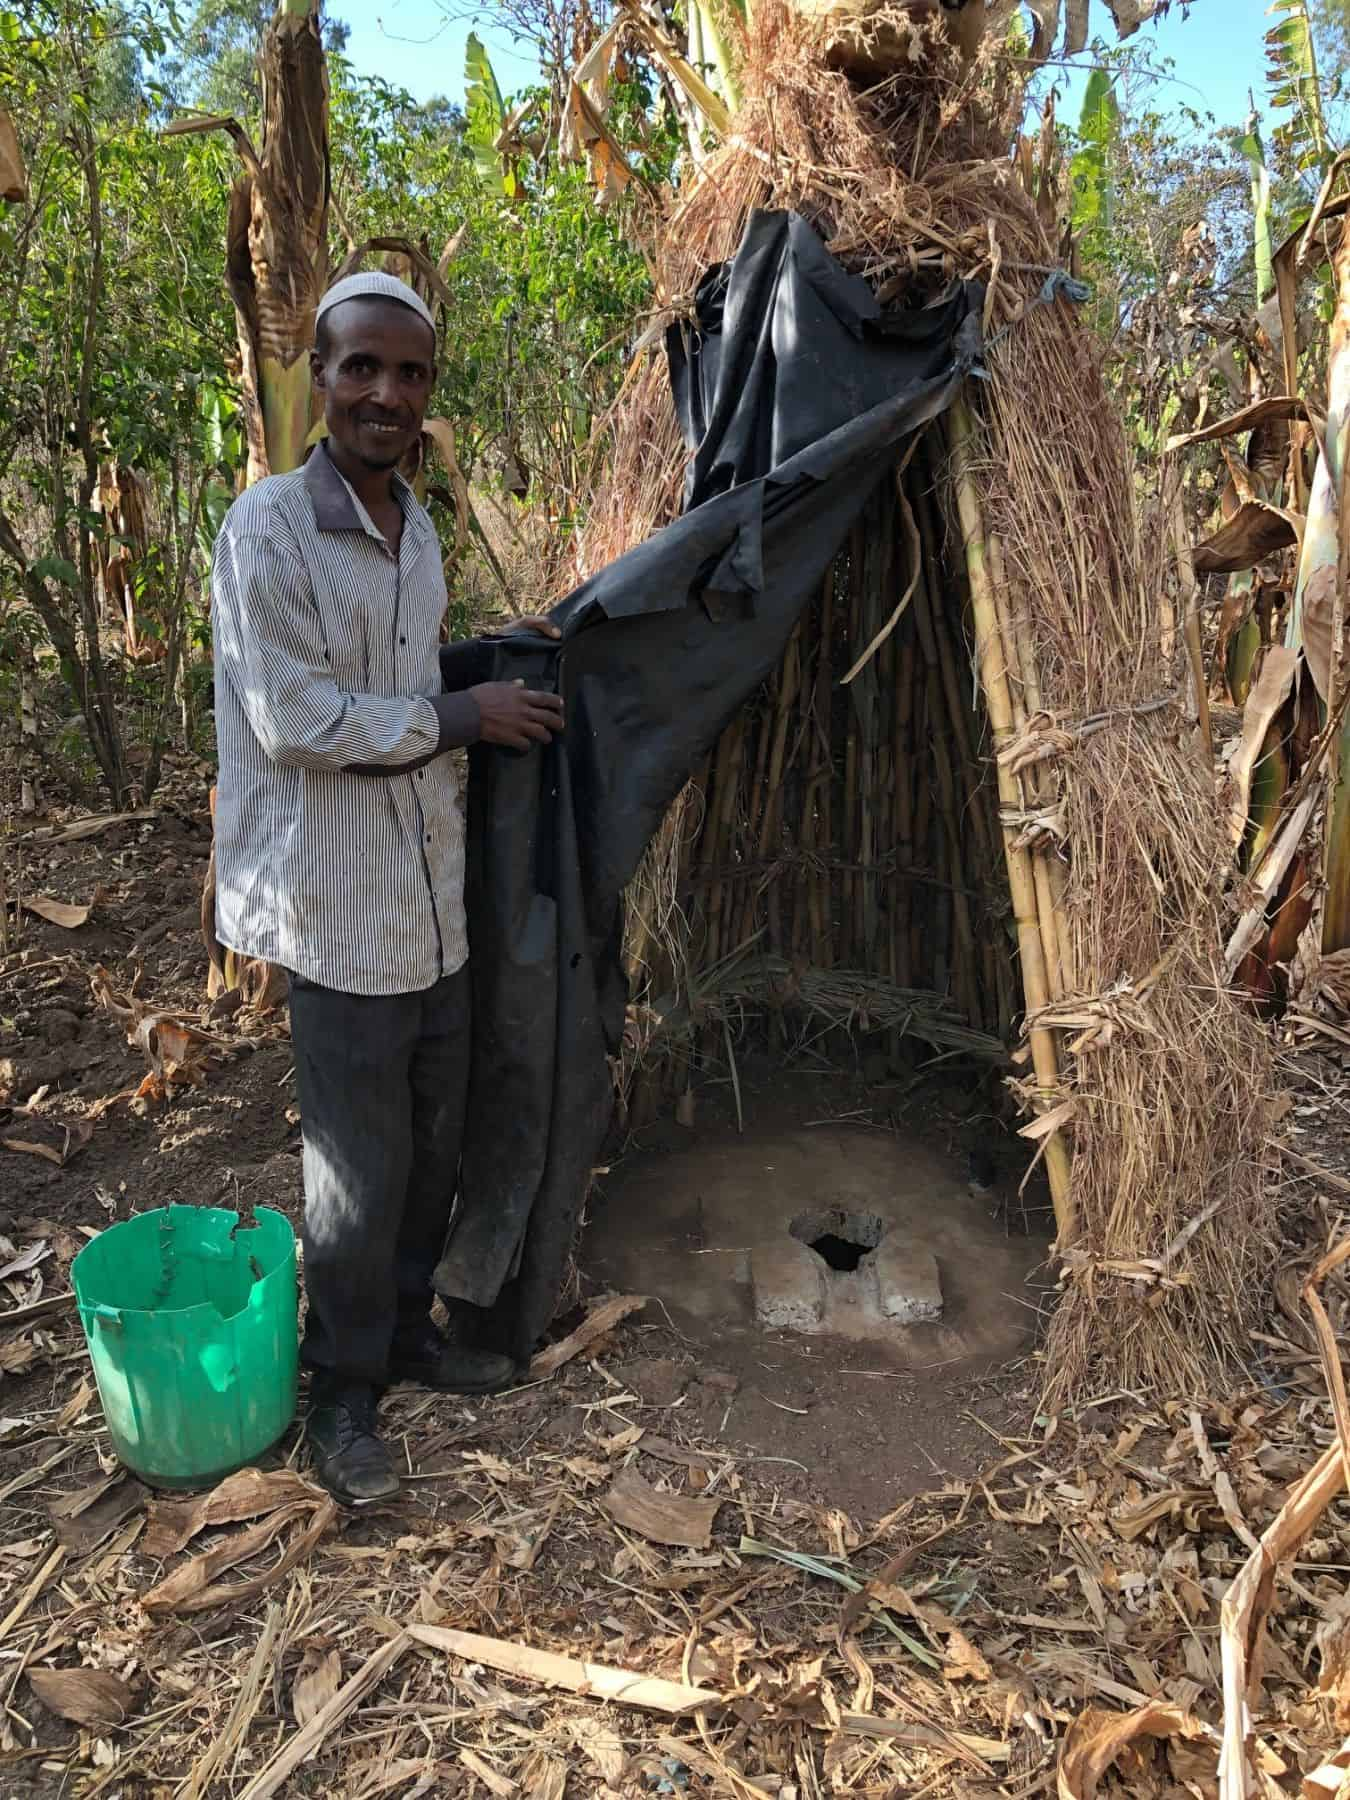 Sefa Nassir proudly showing visitors the latrine he dug and built himself, after our health and hygiene training taught him the importance of using latrines.